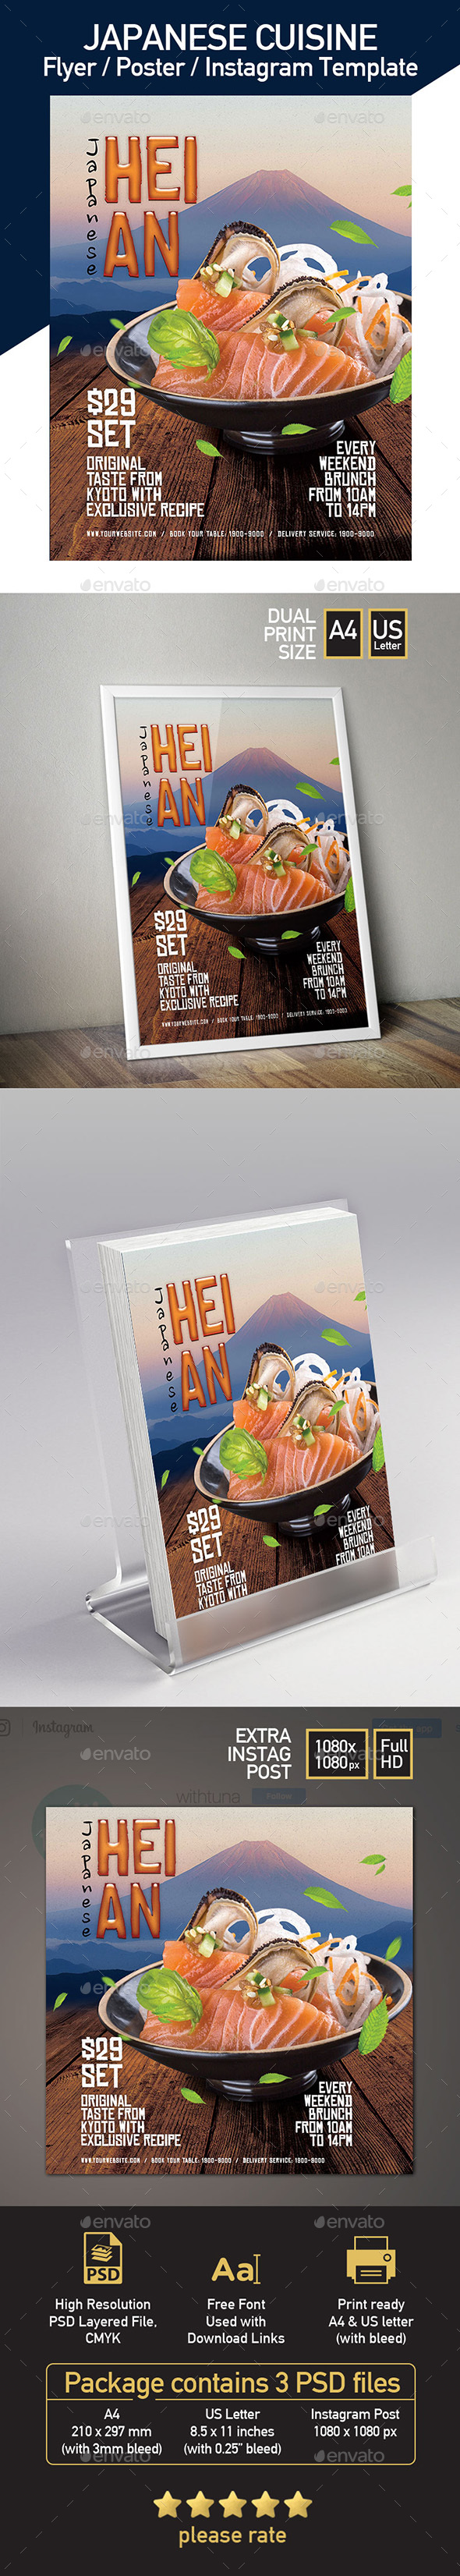 Japanese Restaurant Flyer Promotion - Set of 3 Templates